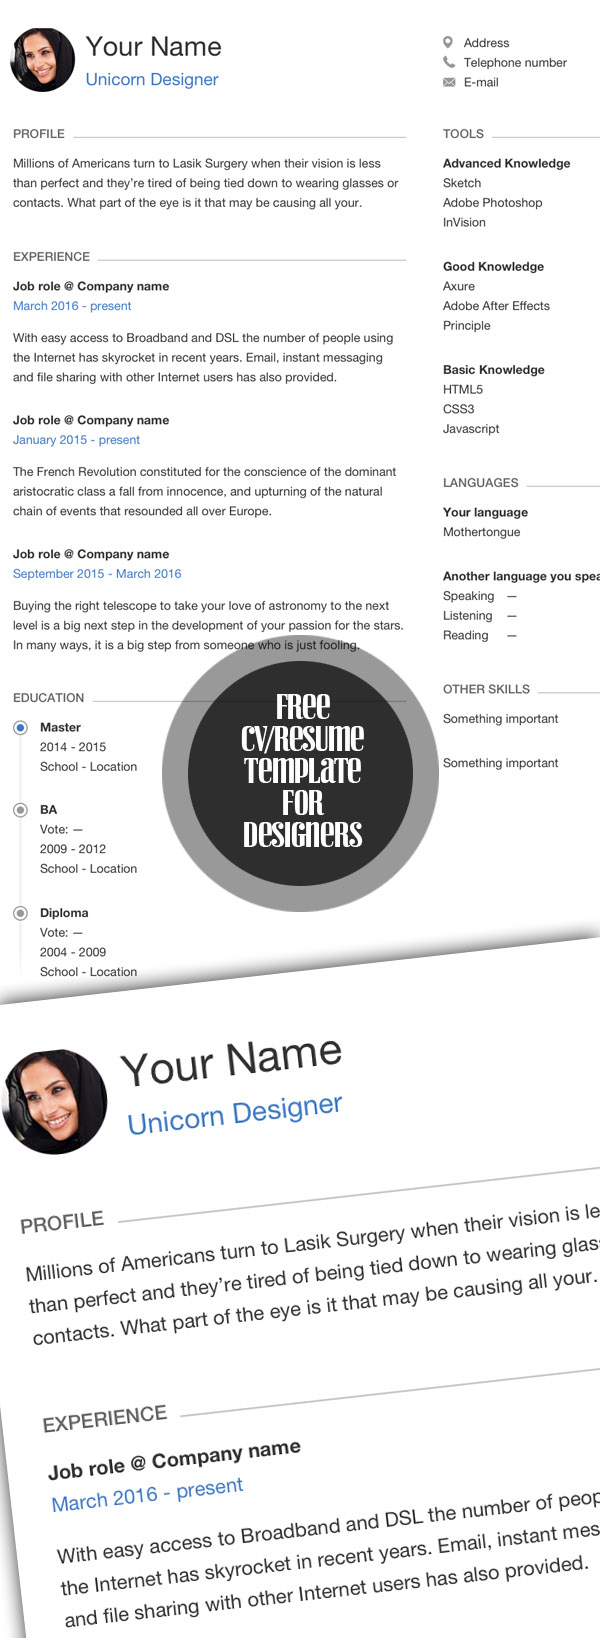 Awesome Free Resume for Designers